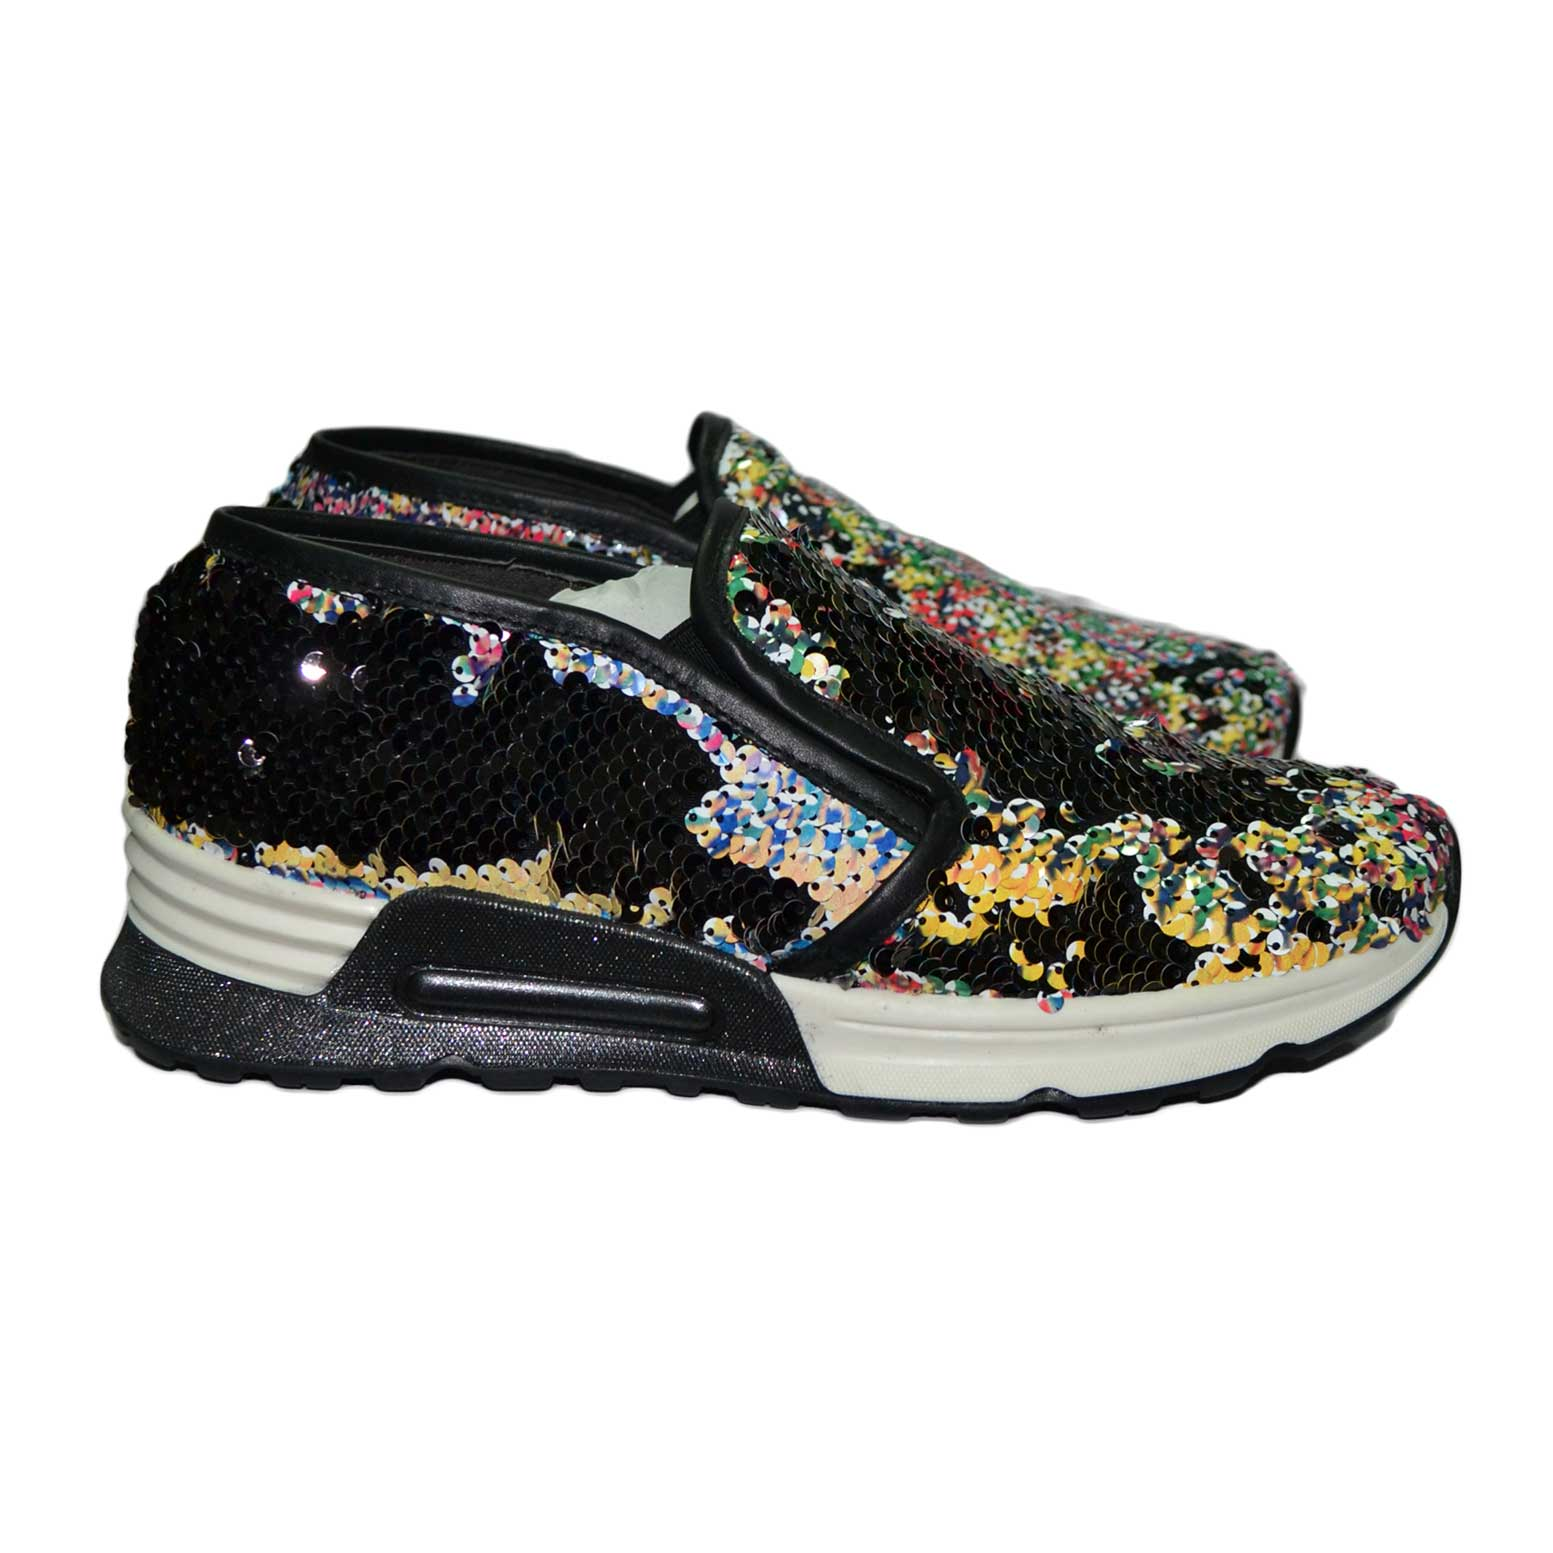 Sneaker pailettes multicolor vera pelle made in italy.